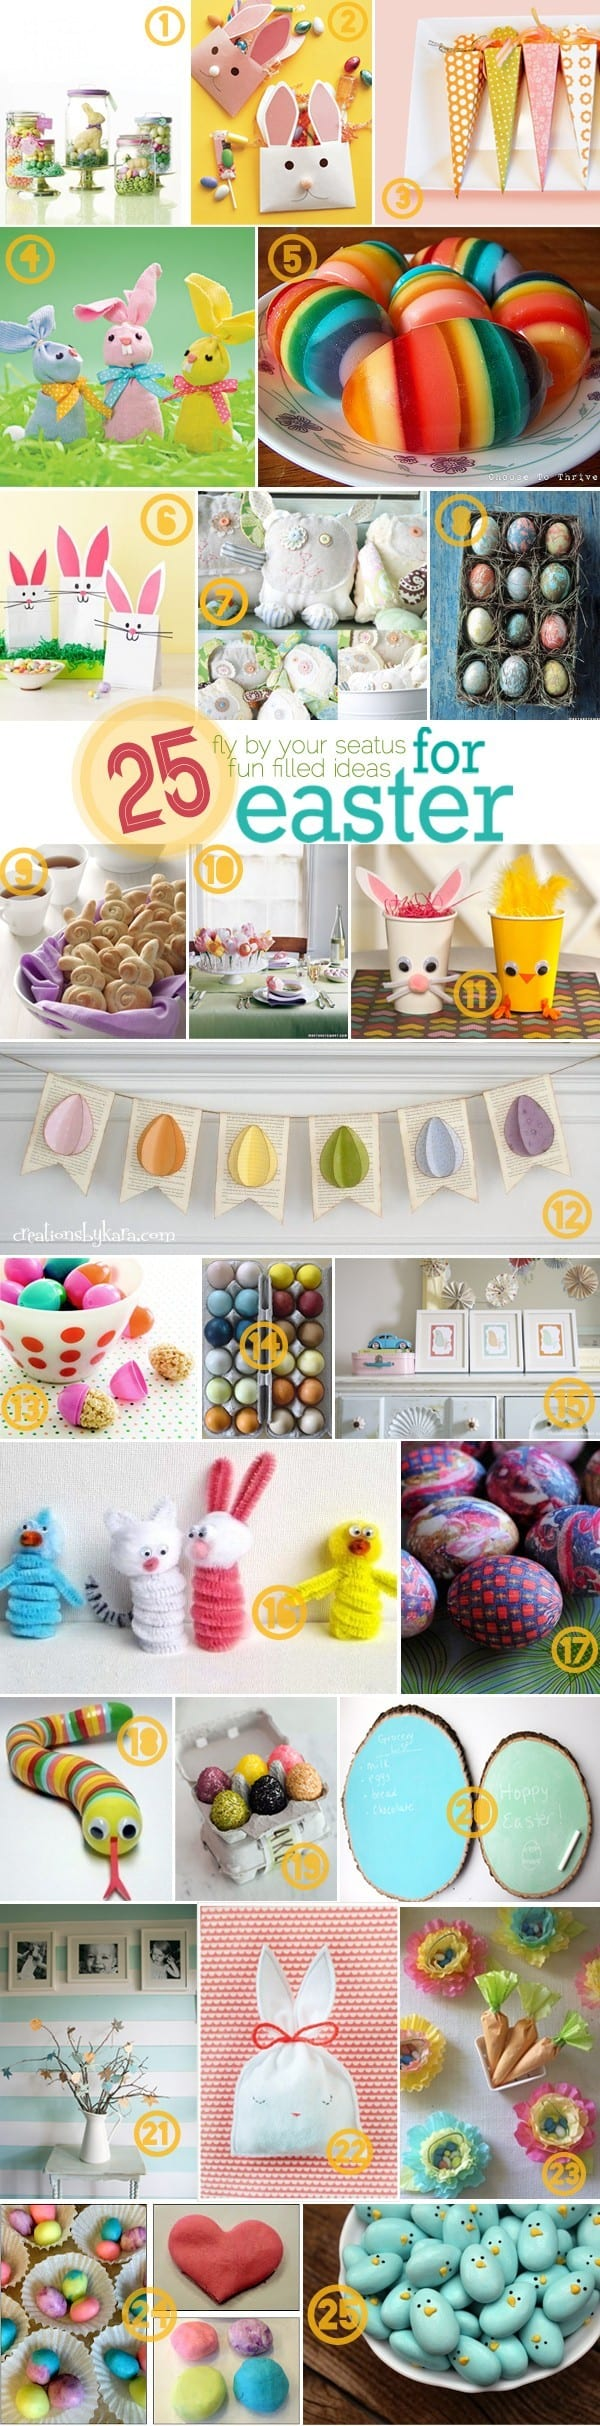 last_minute_easter_ideas